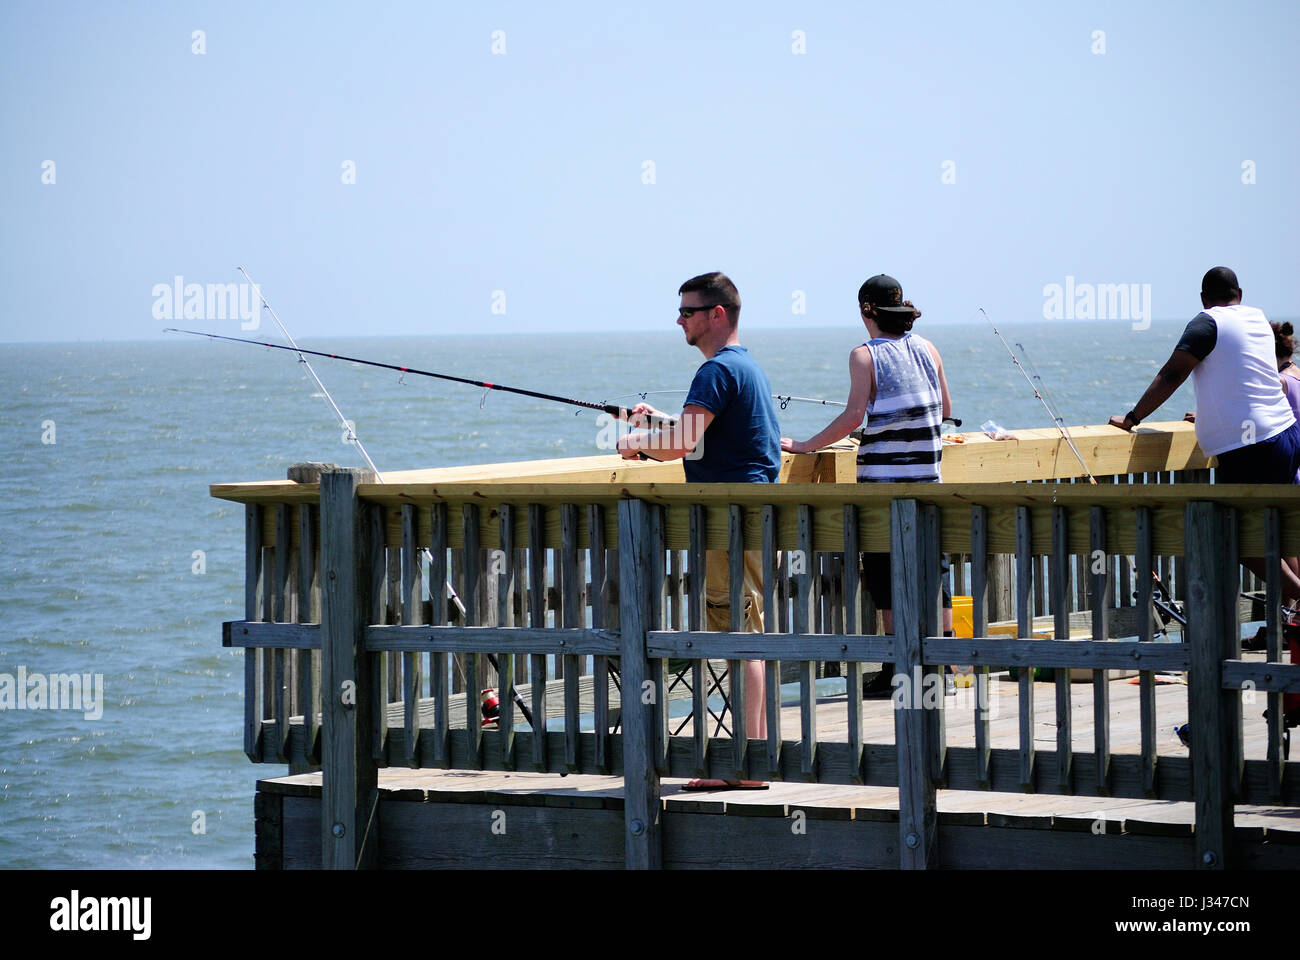 Deep sea fishing bait stock photos deep sea fishing bait for Tybee island fishing pier